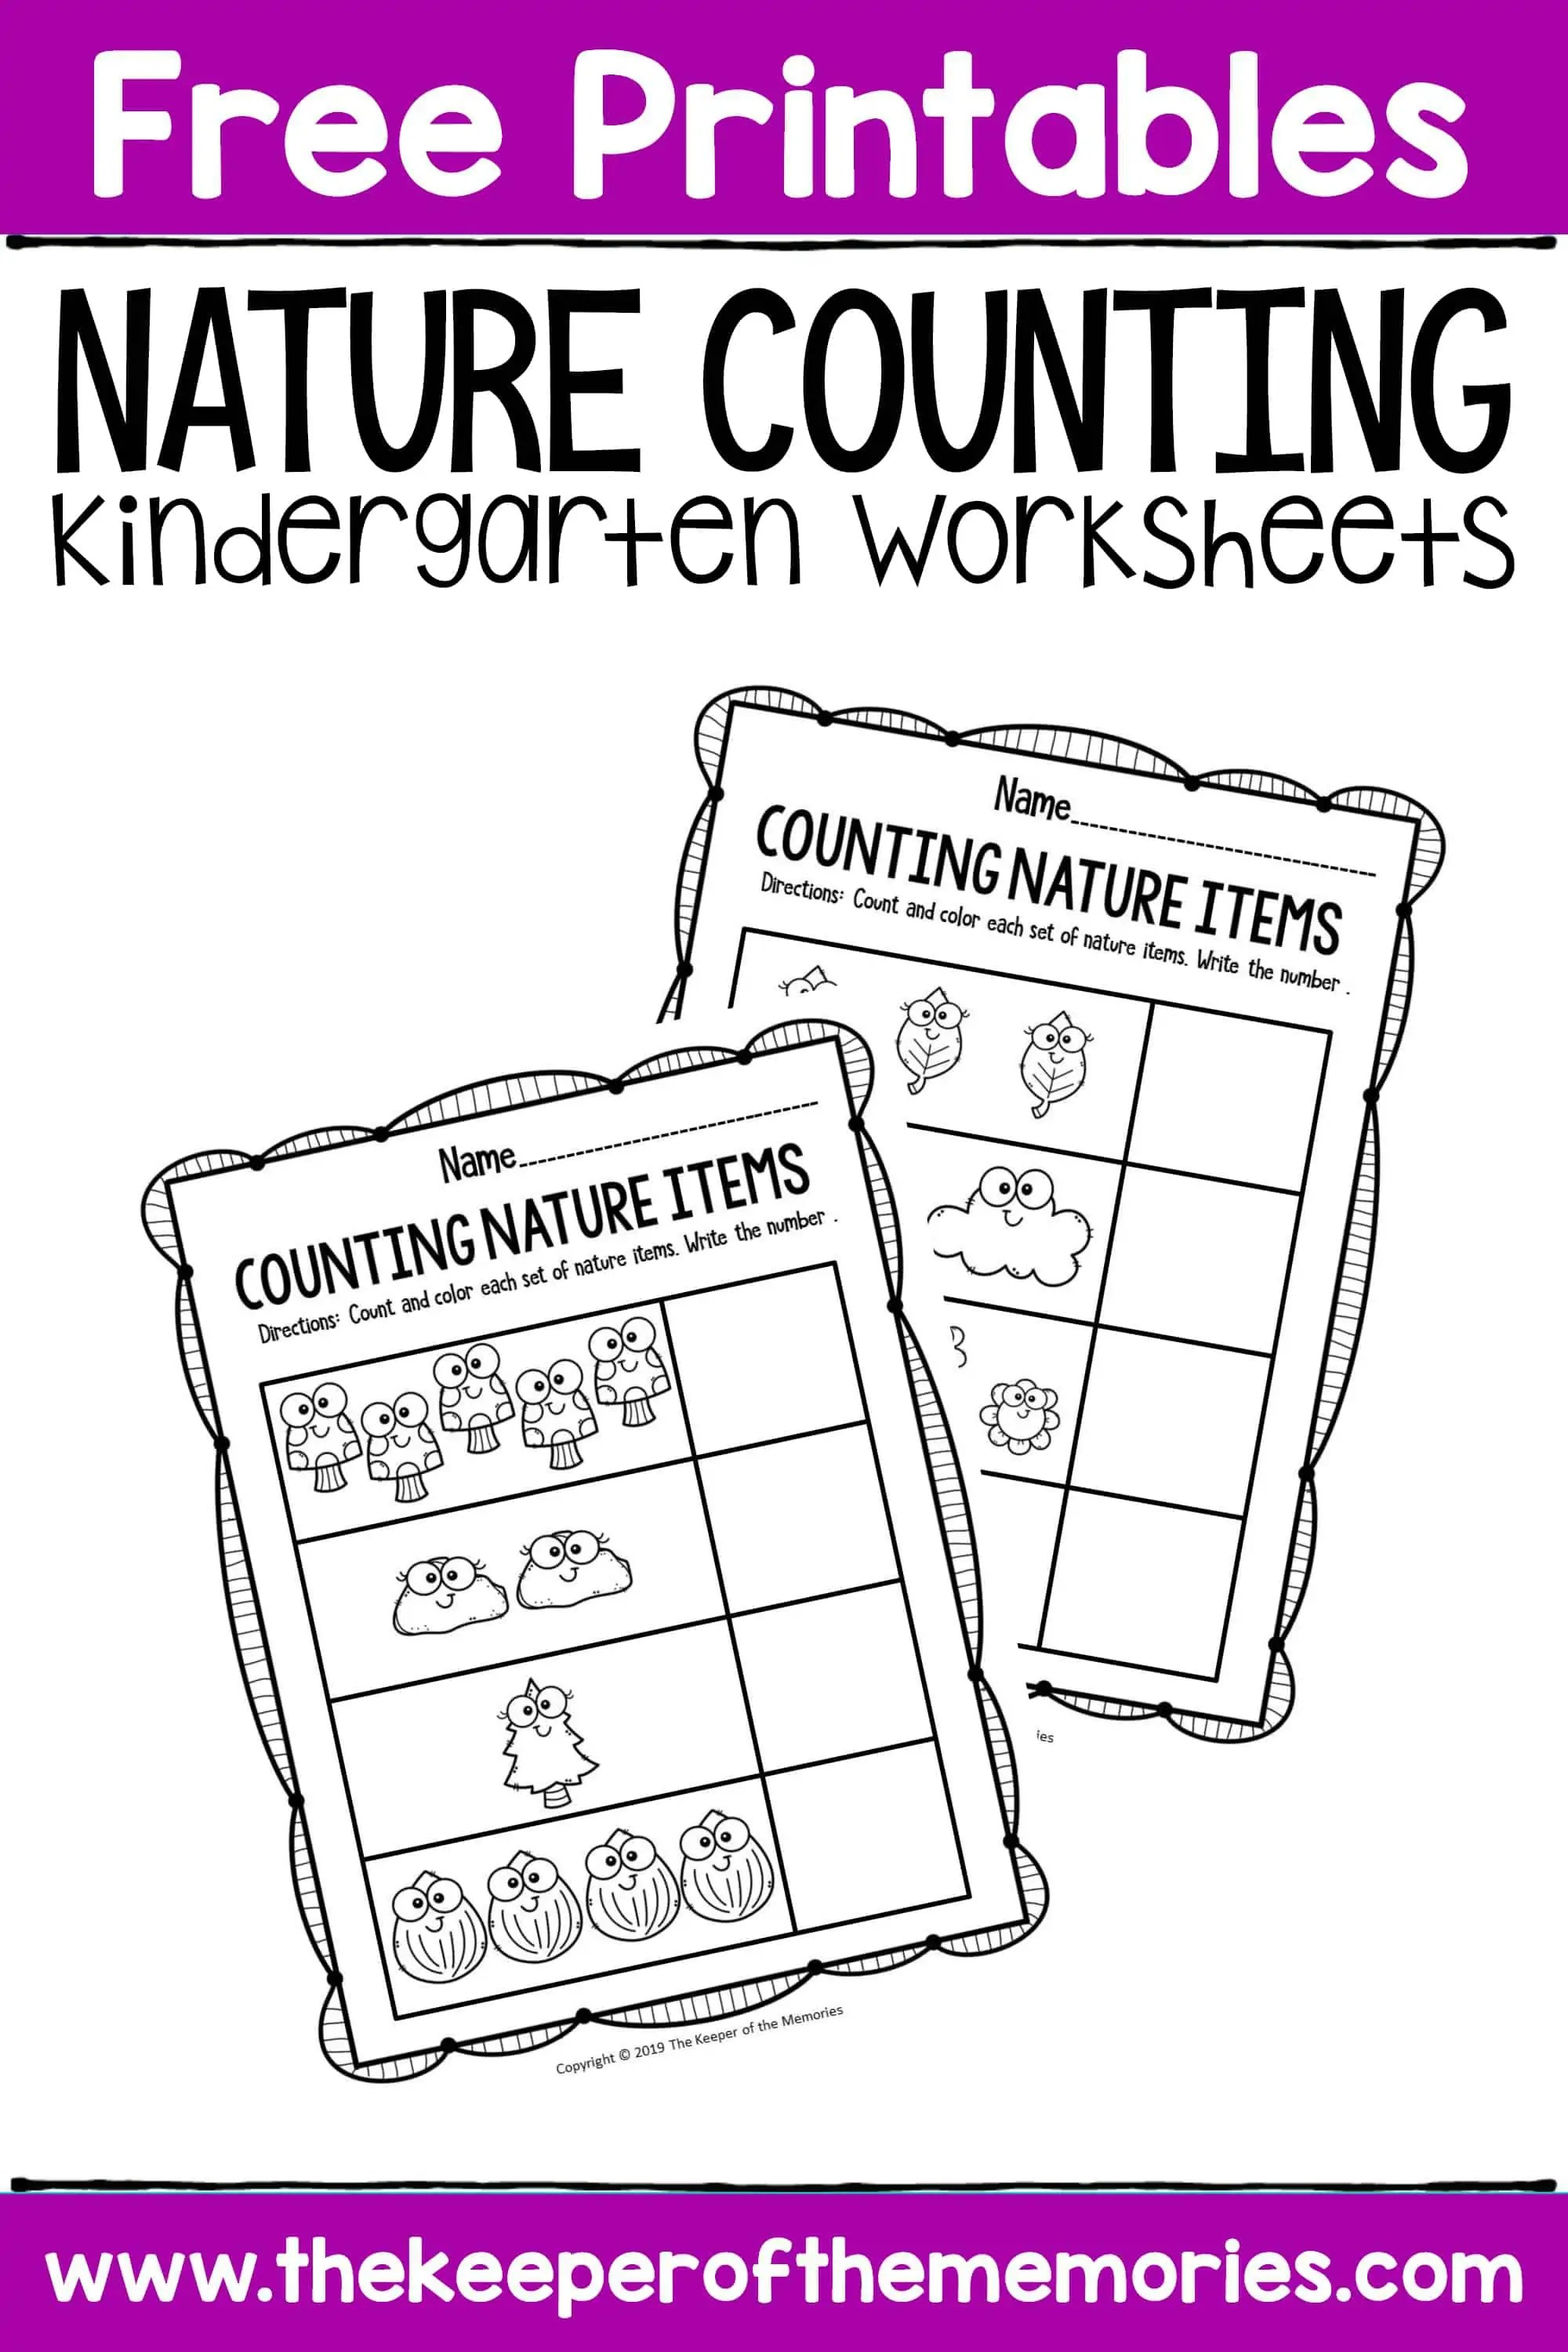 Free Printable Nature Counting Kindergarten Worksheets